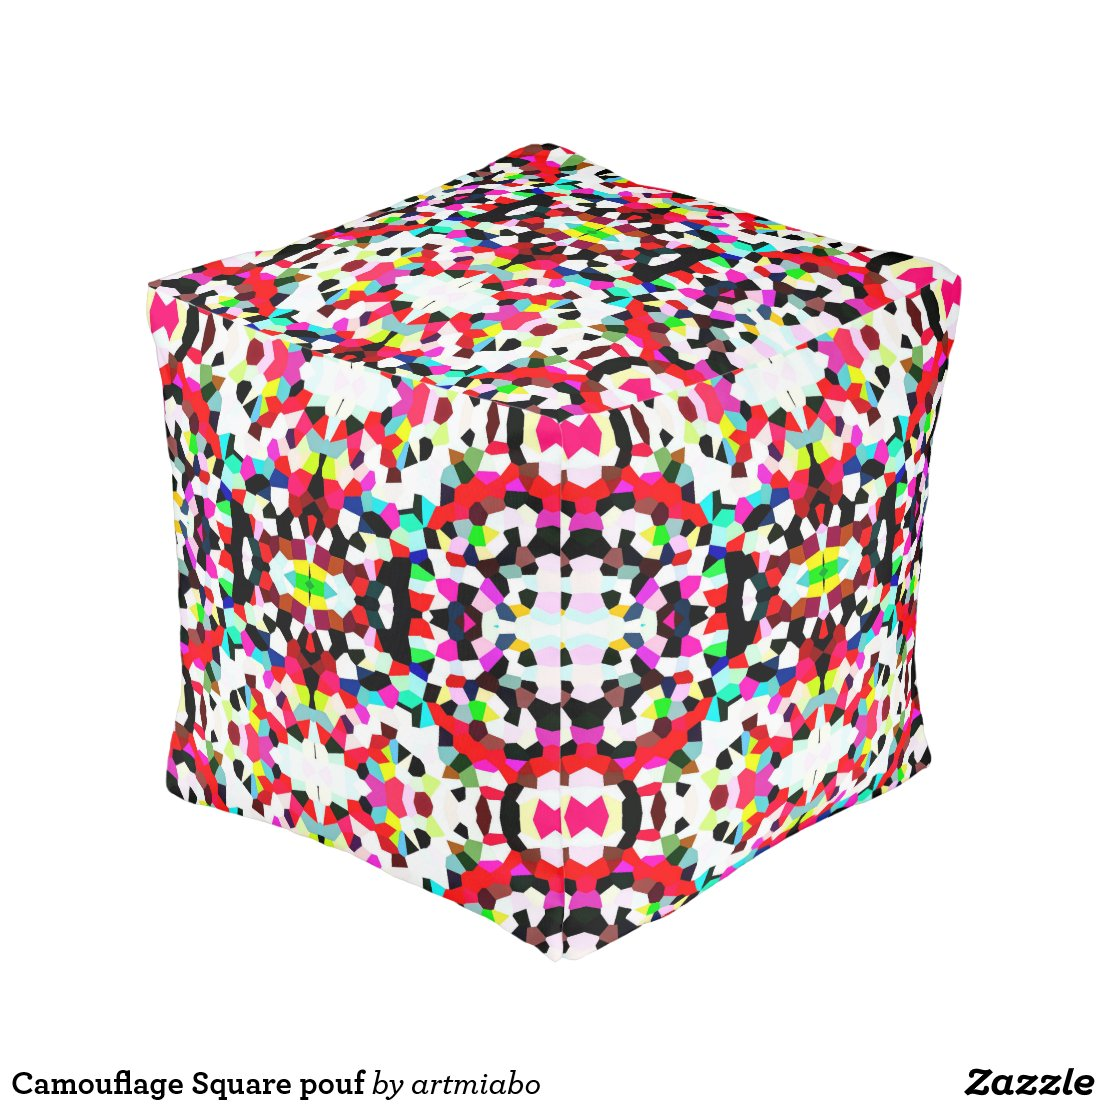 Camouflage Square pouf